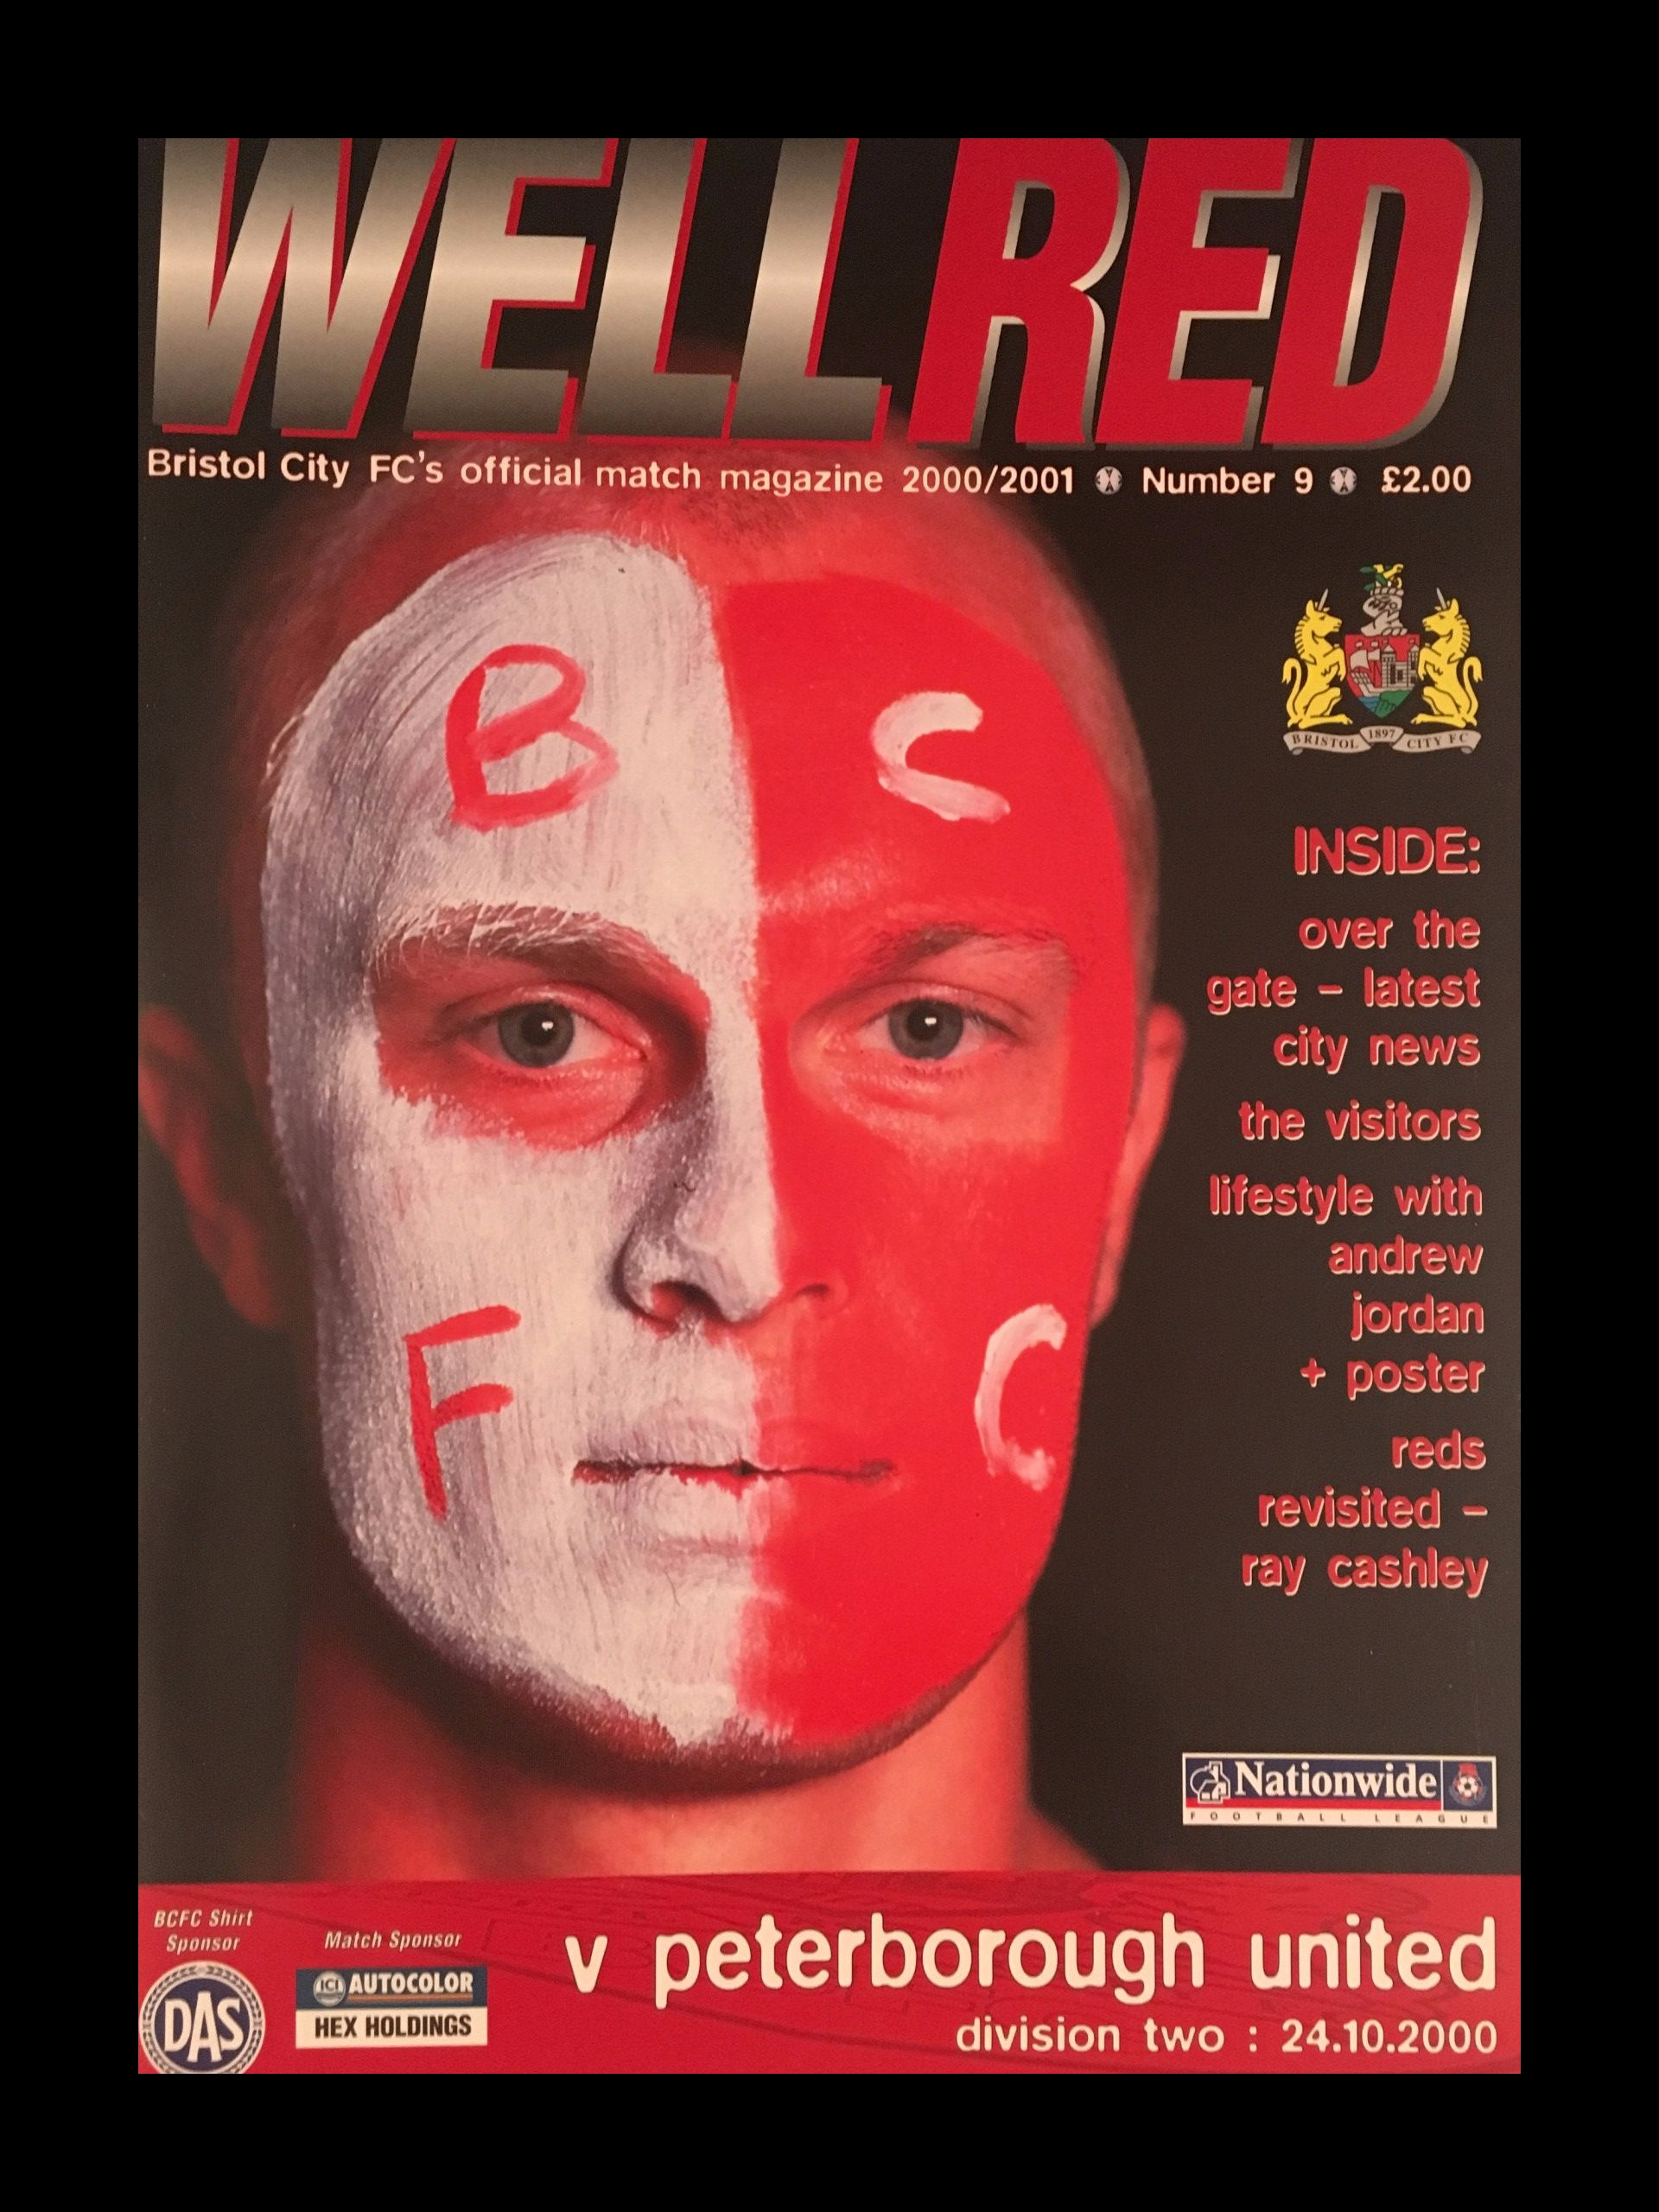 Bristol City v Peterborough United 24-10-2000 Programme